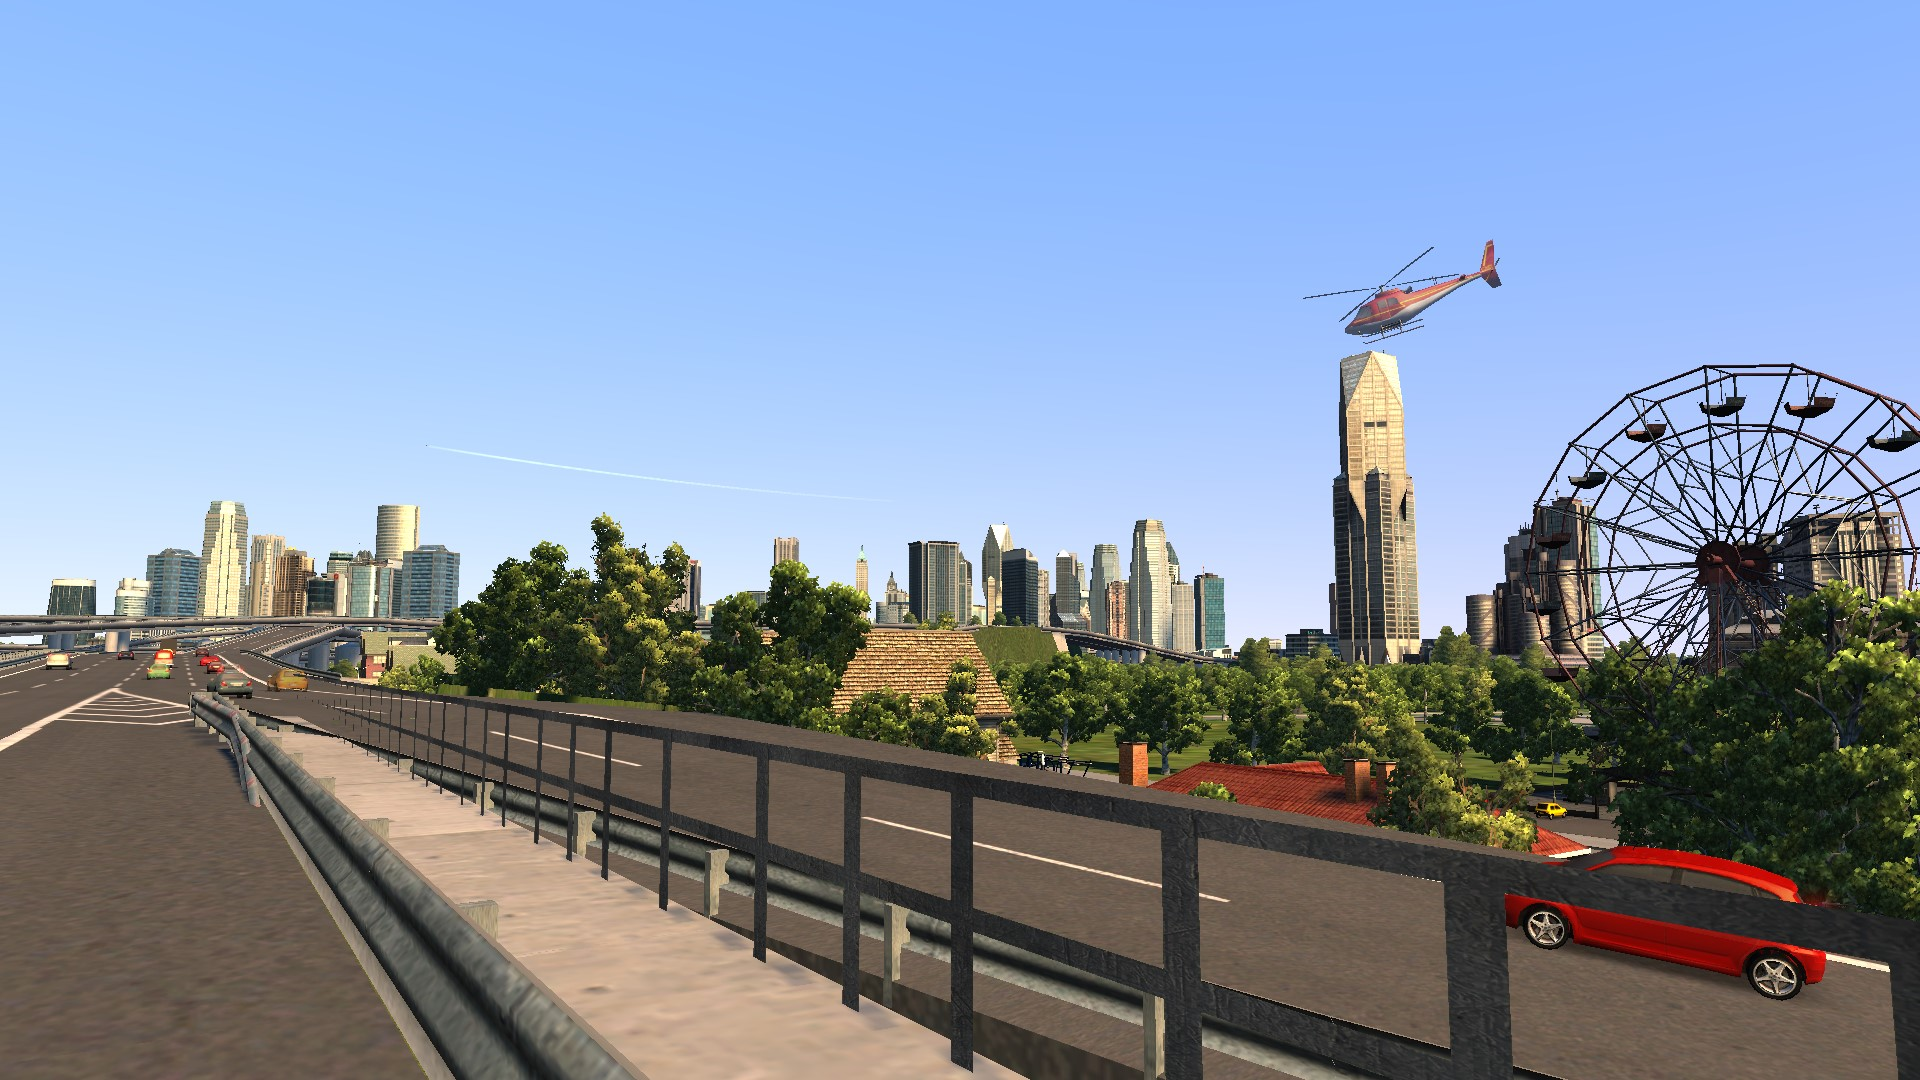 cxl_screenshot_liberty city_10.jpg